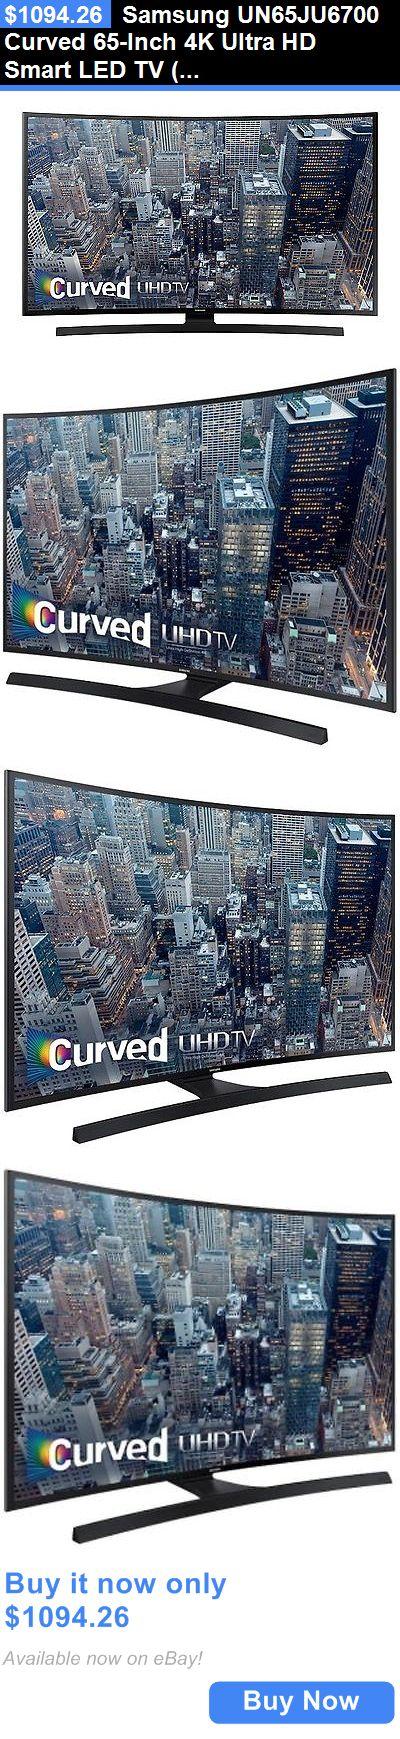 Smart TV: Samsung Un65ju6700 Curved 65-Inch 4K Ultra Hd Smart Led Tv (Un65ju6700fxza/Ob1) BUY IT NOW ONLY: $1094.26